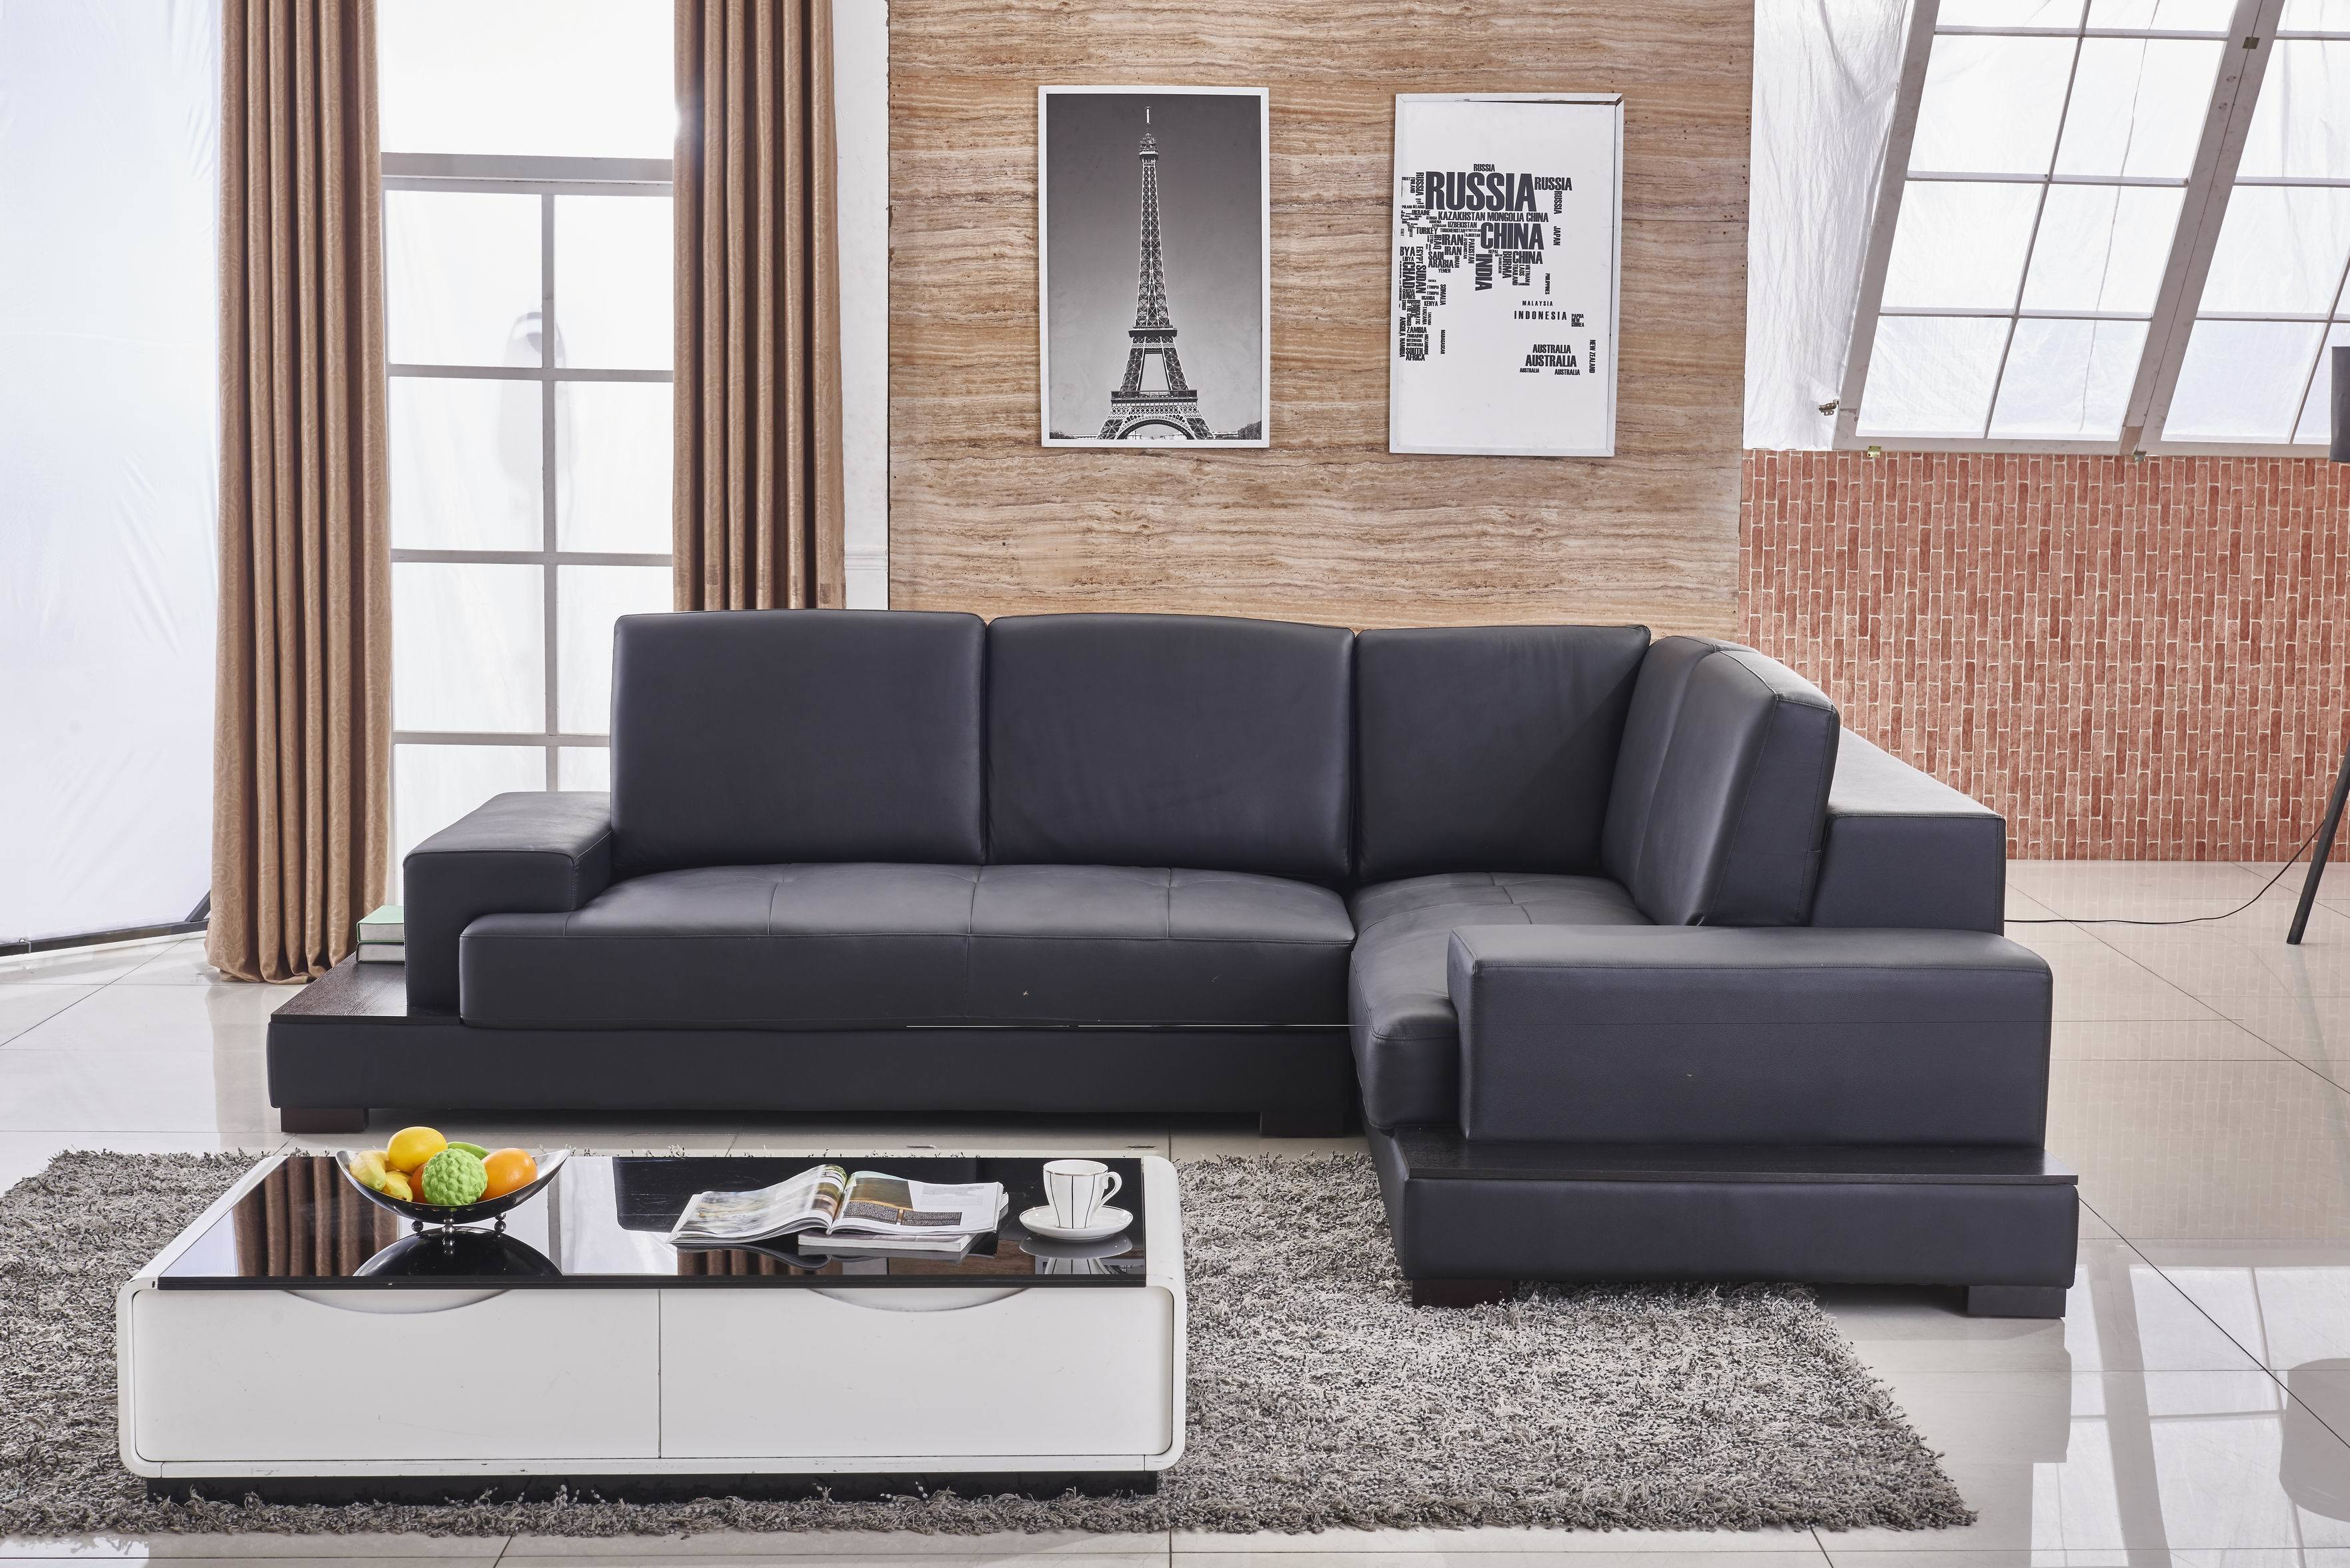 The Leather Factory Sofa Luxury Canape Moderne French Style Leather Sofa Furniture China Cheap Furniture French Style Leather Sofa Made In China Com